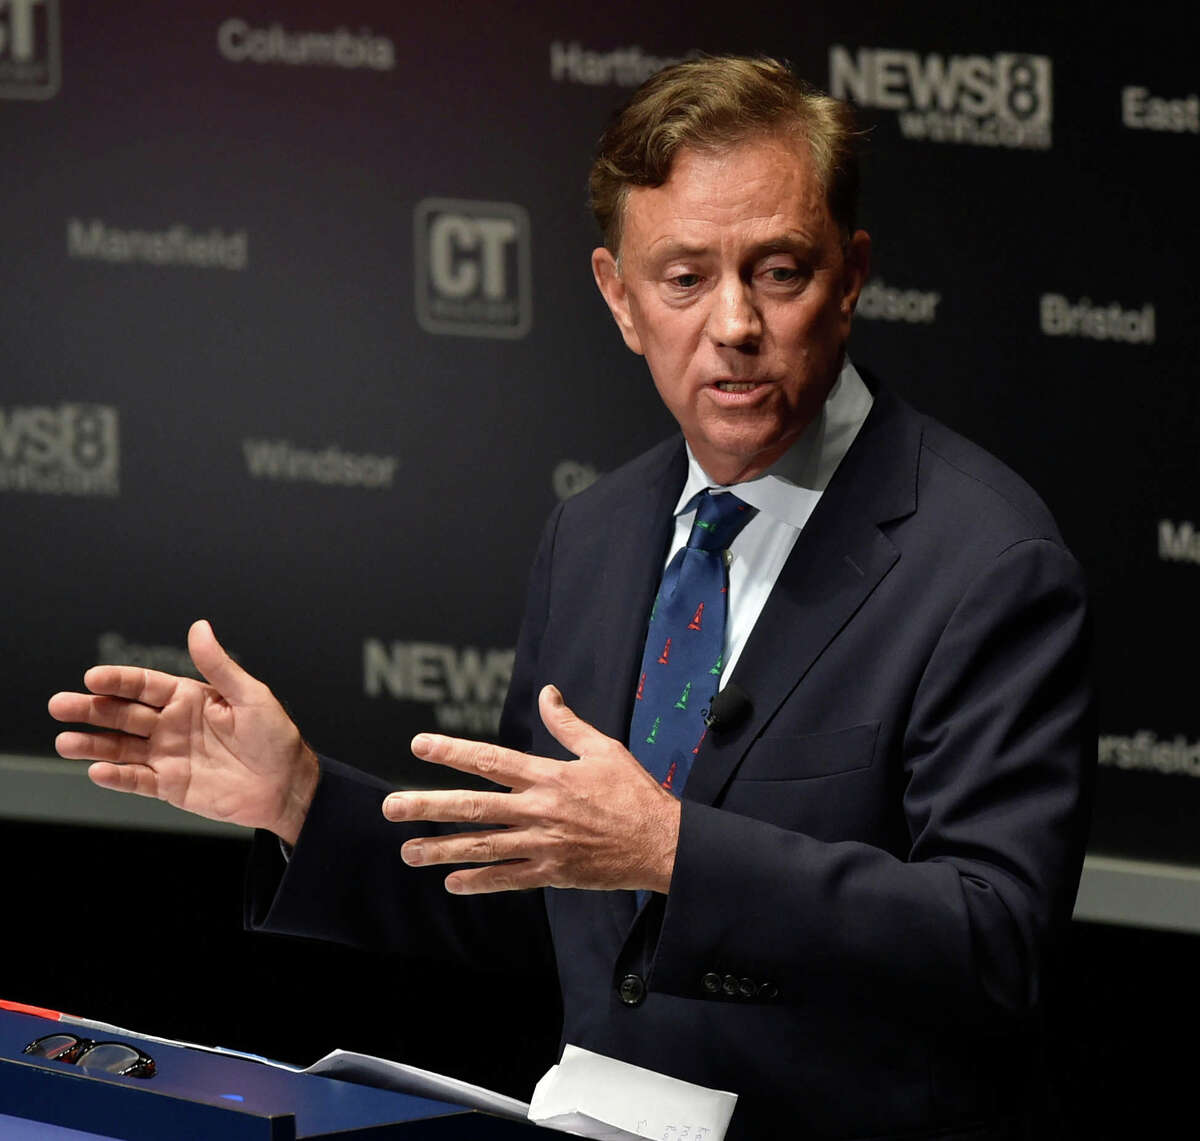 New Haven, Connecticut -Monday, September 17 2018: Democratic gubernatorial candidate Ned Lamont during a debate against Republican gubernatorial candidate Bob Stefanowski Monday evening at the Shubert Theatre in New Haven. The gubernatorial debate is sponsored by the Connecticut Association of Realtors in partnership with WTNH News 8.